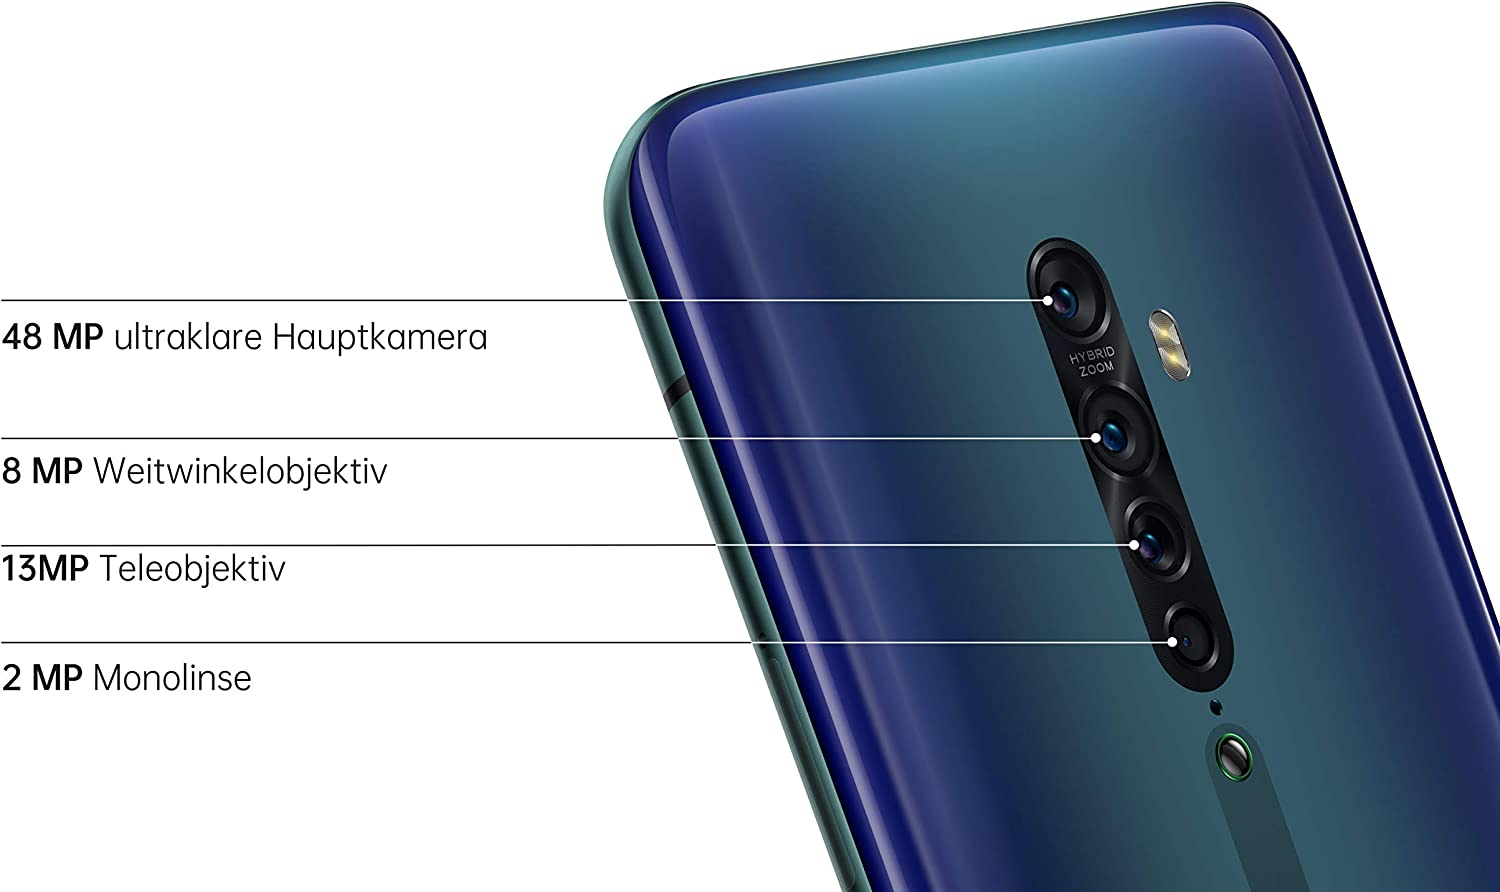 Deutsche Version inkl Dual SIM OPPO Reno2 Smartphone 16,5 cm Quad-KI-Hauptkamera// Pop-up-Frontkamera 6,5 Zoll Schutzcover AMOLED Display 256 GB interner Speicher 8 GB RAM luminous black